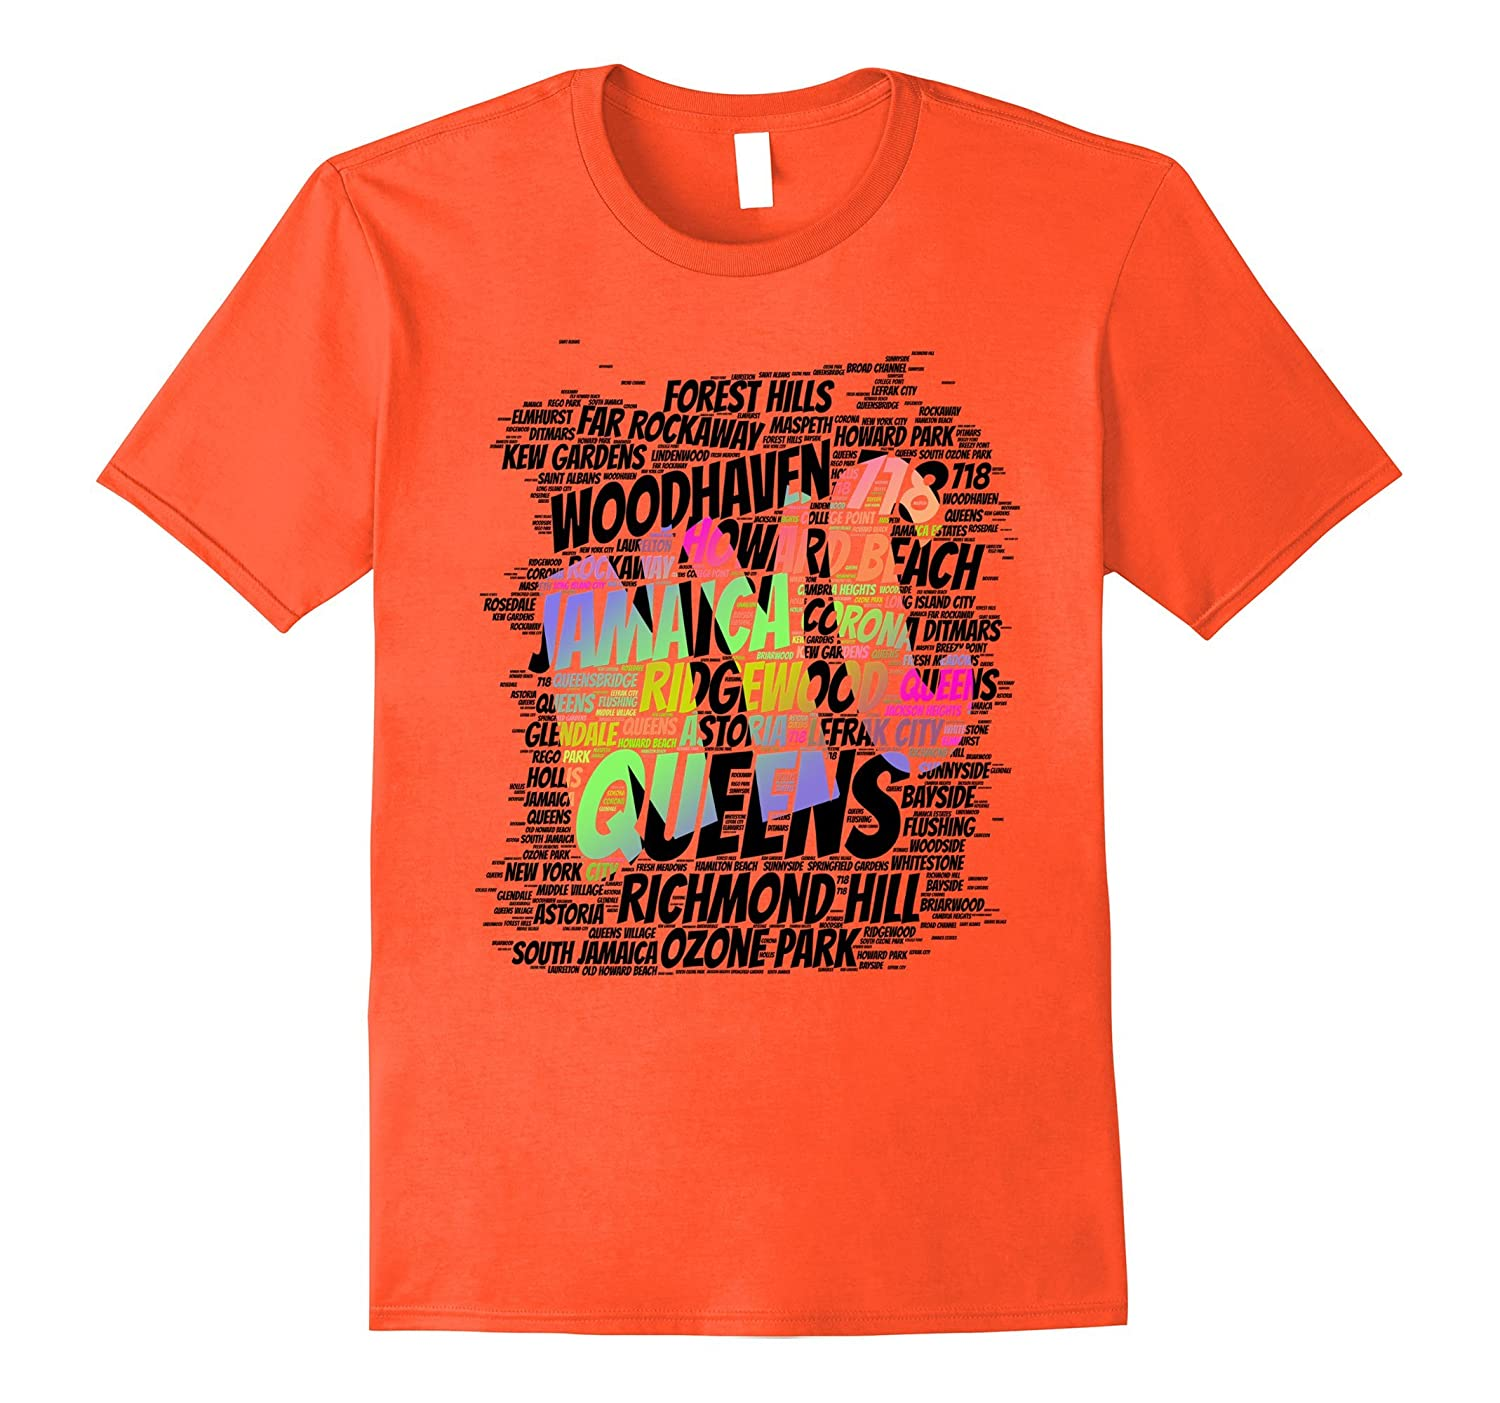 Put Queens on map new york city nyc word T-shirt-PL – Polozatee 2cc984bc2bc